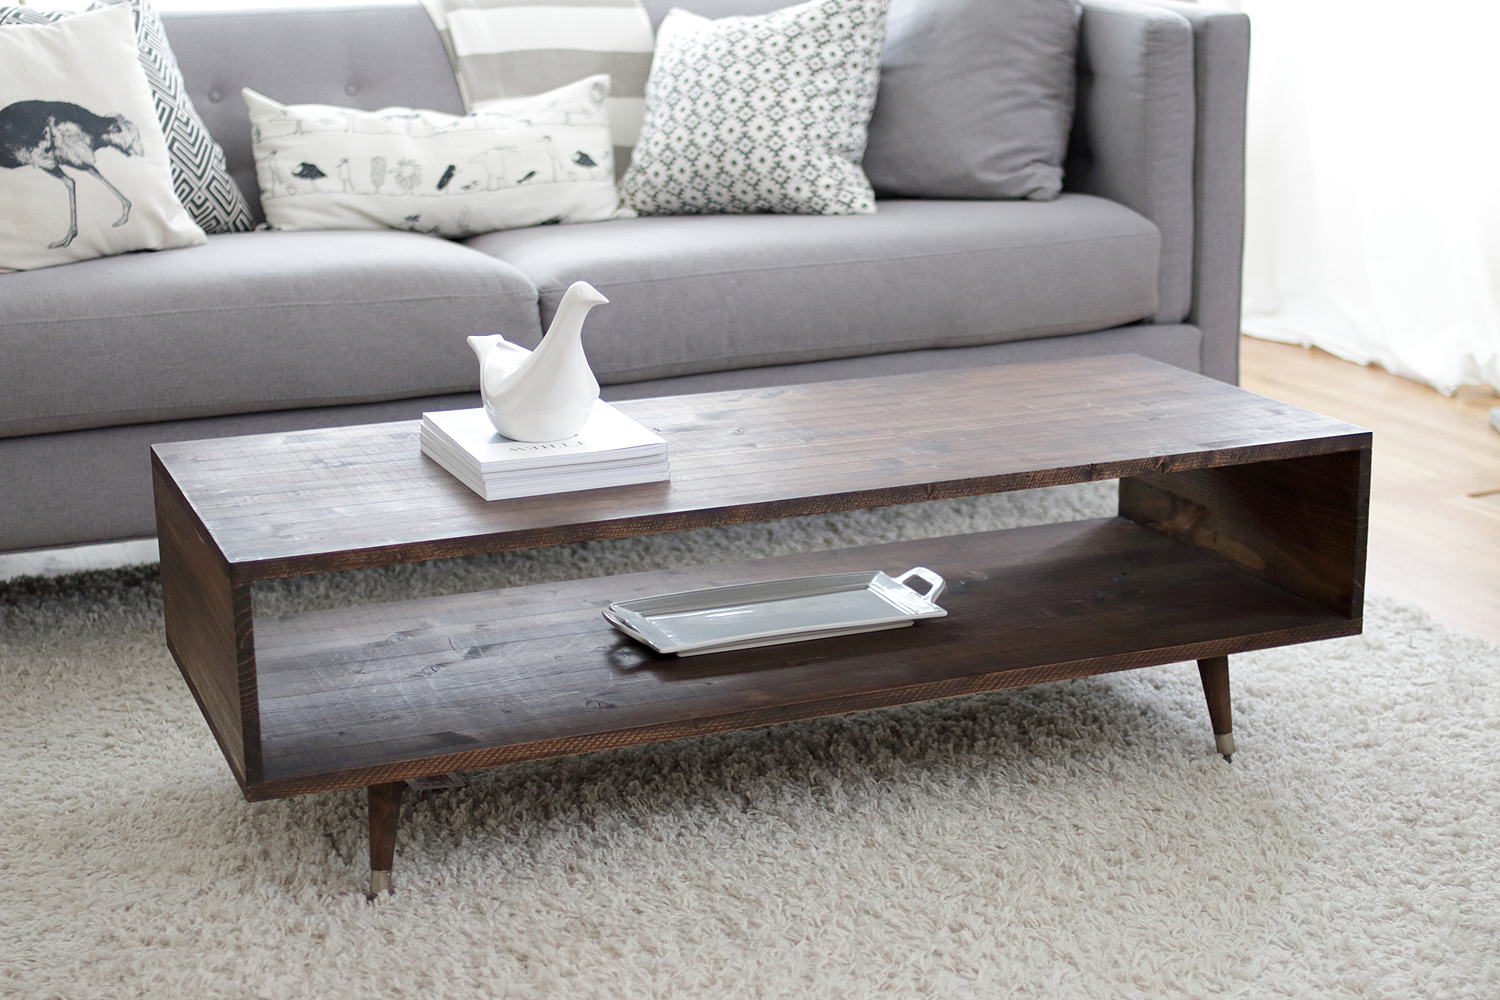 Build Your Own Mid Century Modern Coffee Table For 60 Bay